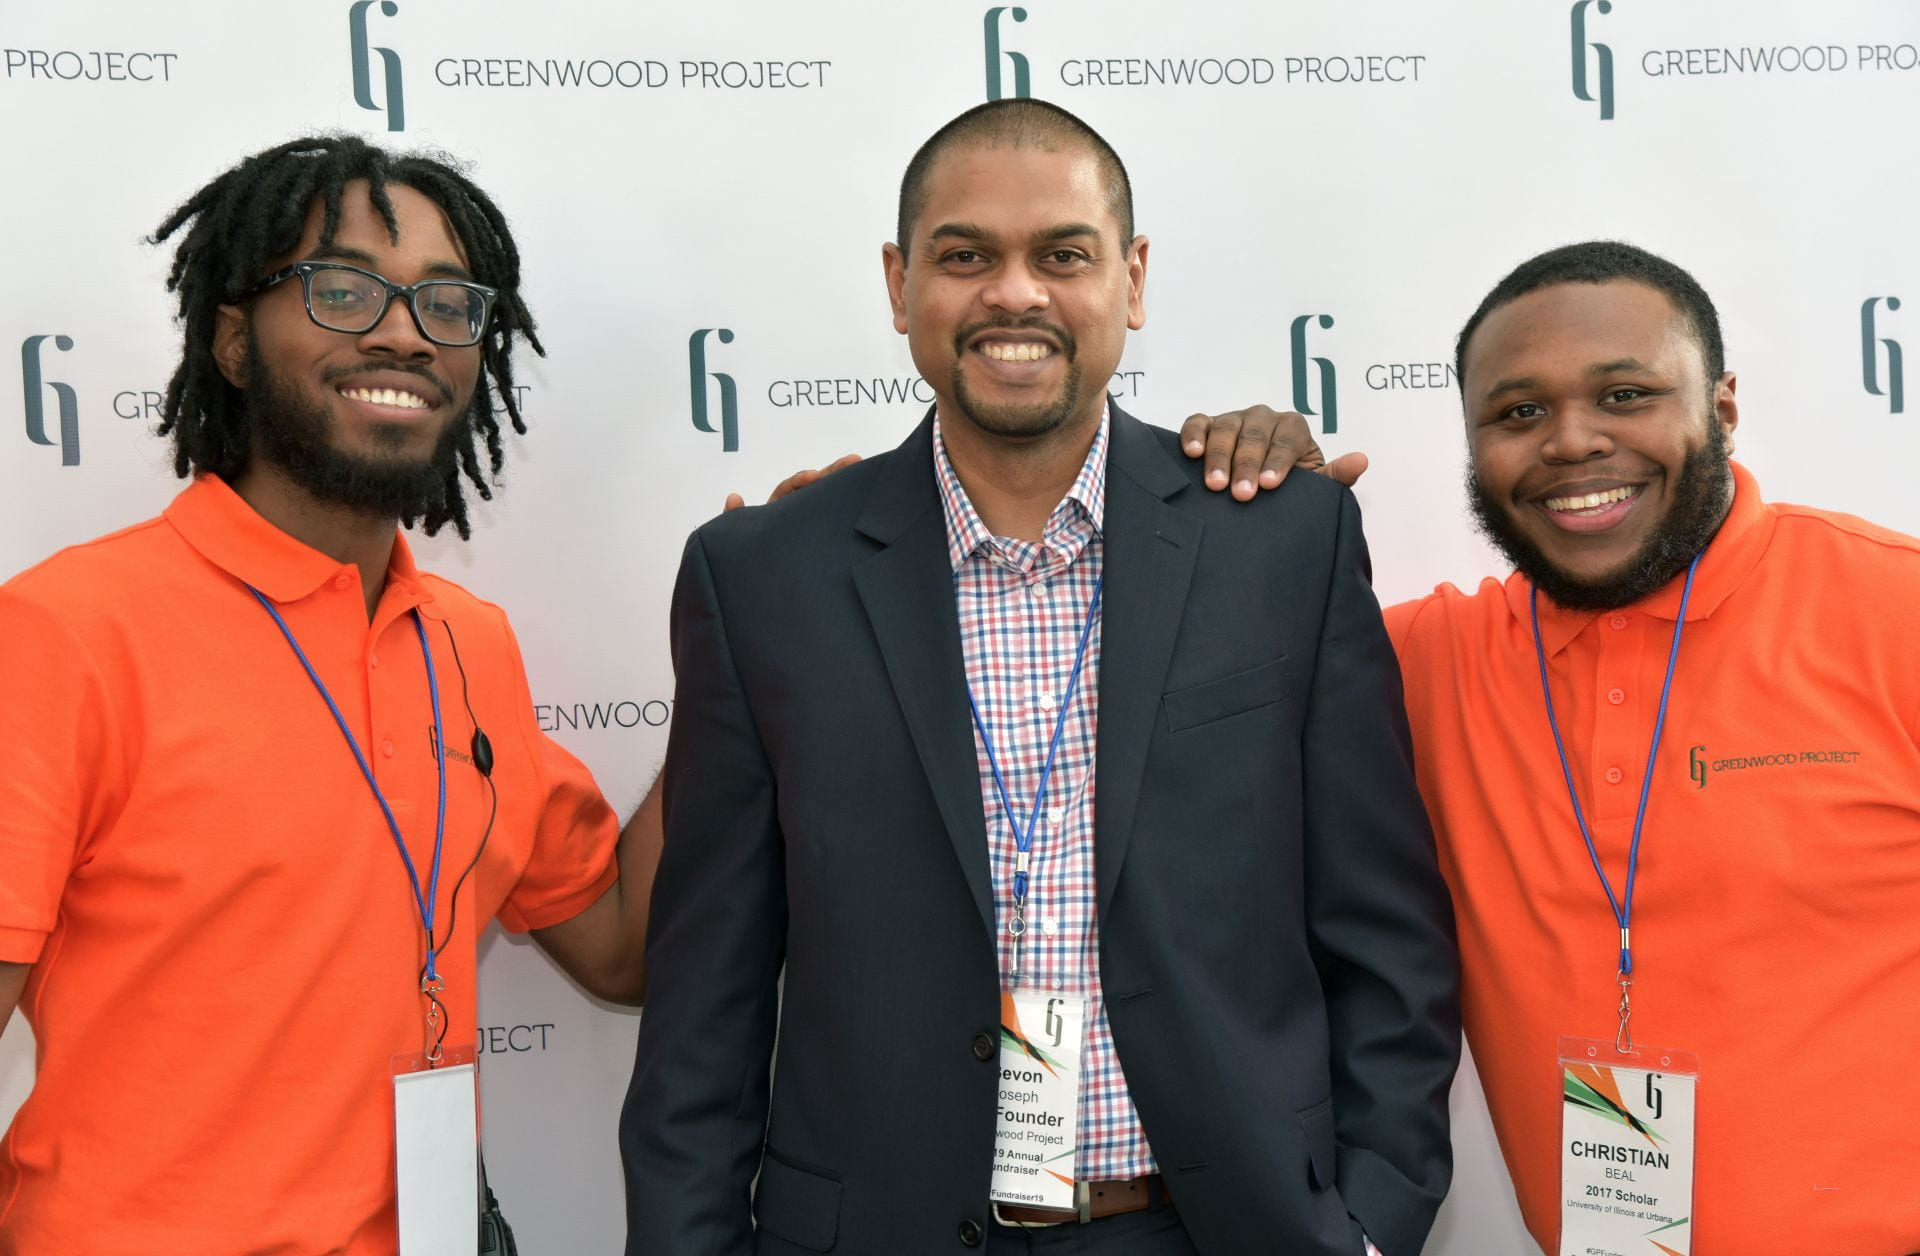 Bevon Joseph at annual Greenwood Project fundraiser, along with student participants